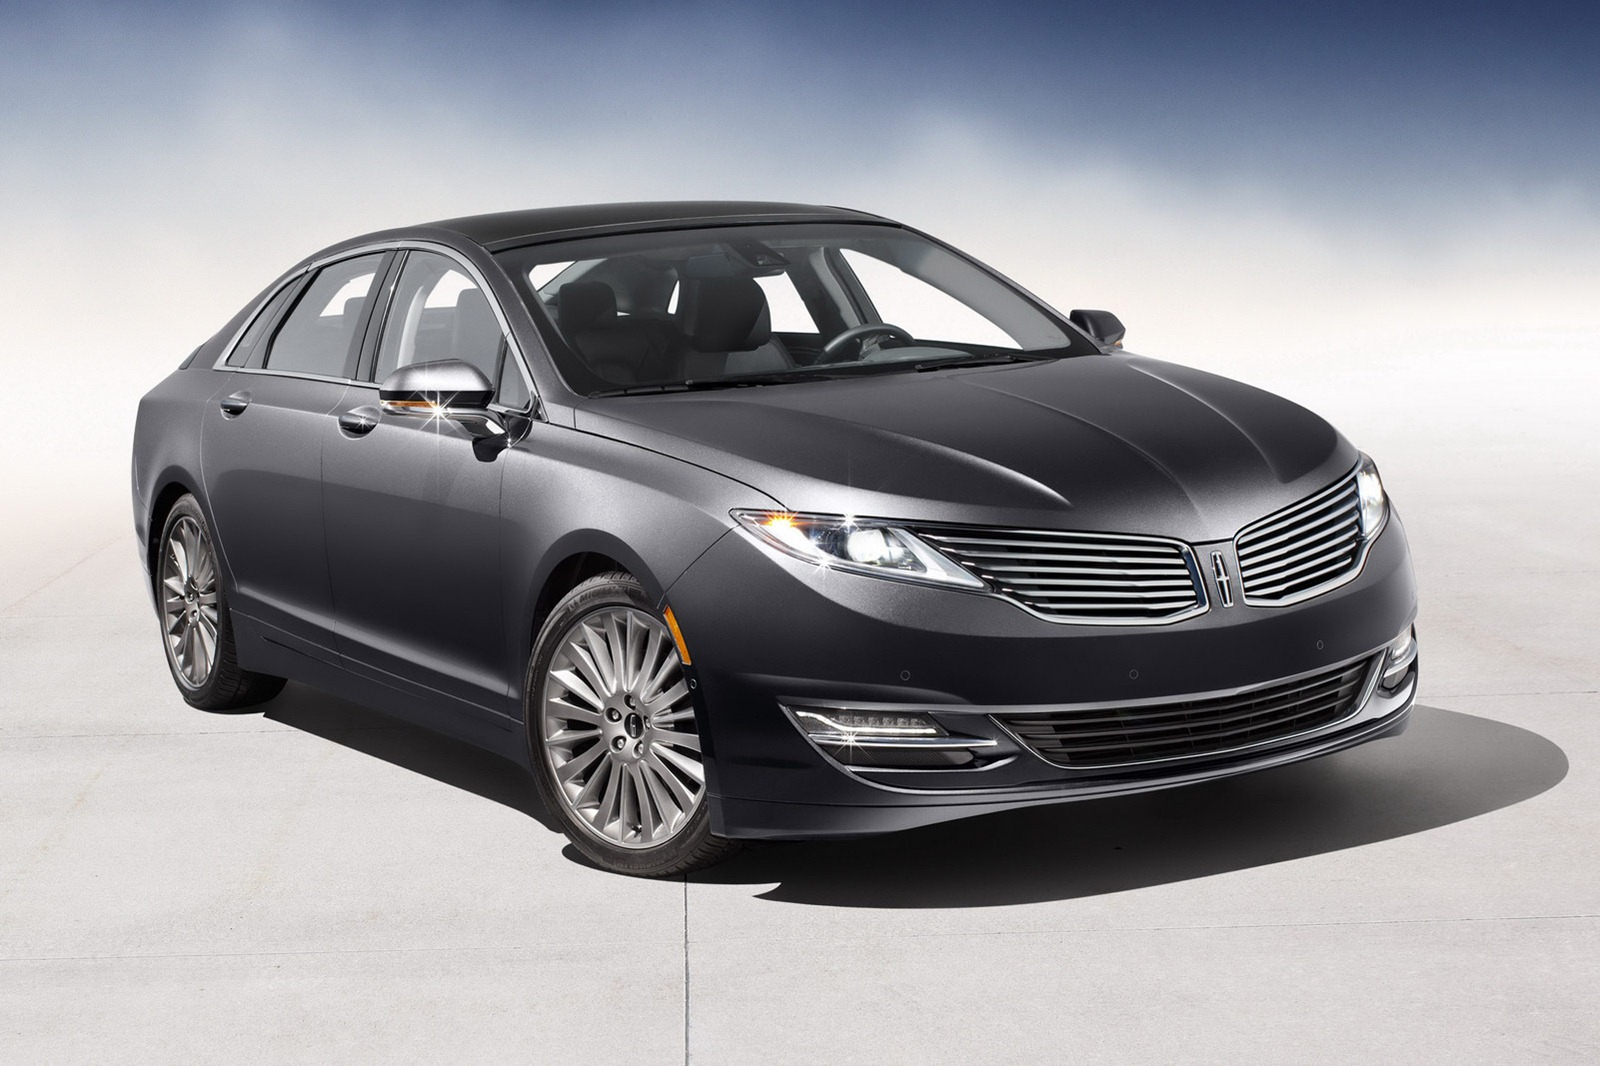 2013 lincoln mkz unveiled photo gallery autoevolution. Black Bedroom Furniture Sets. Home Design Ideas